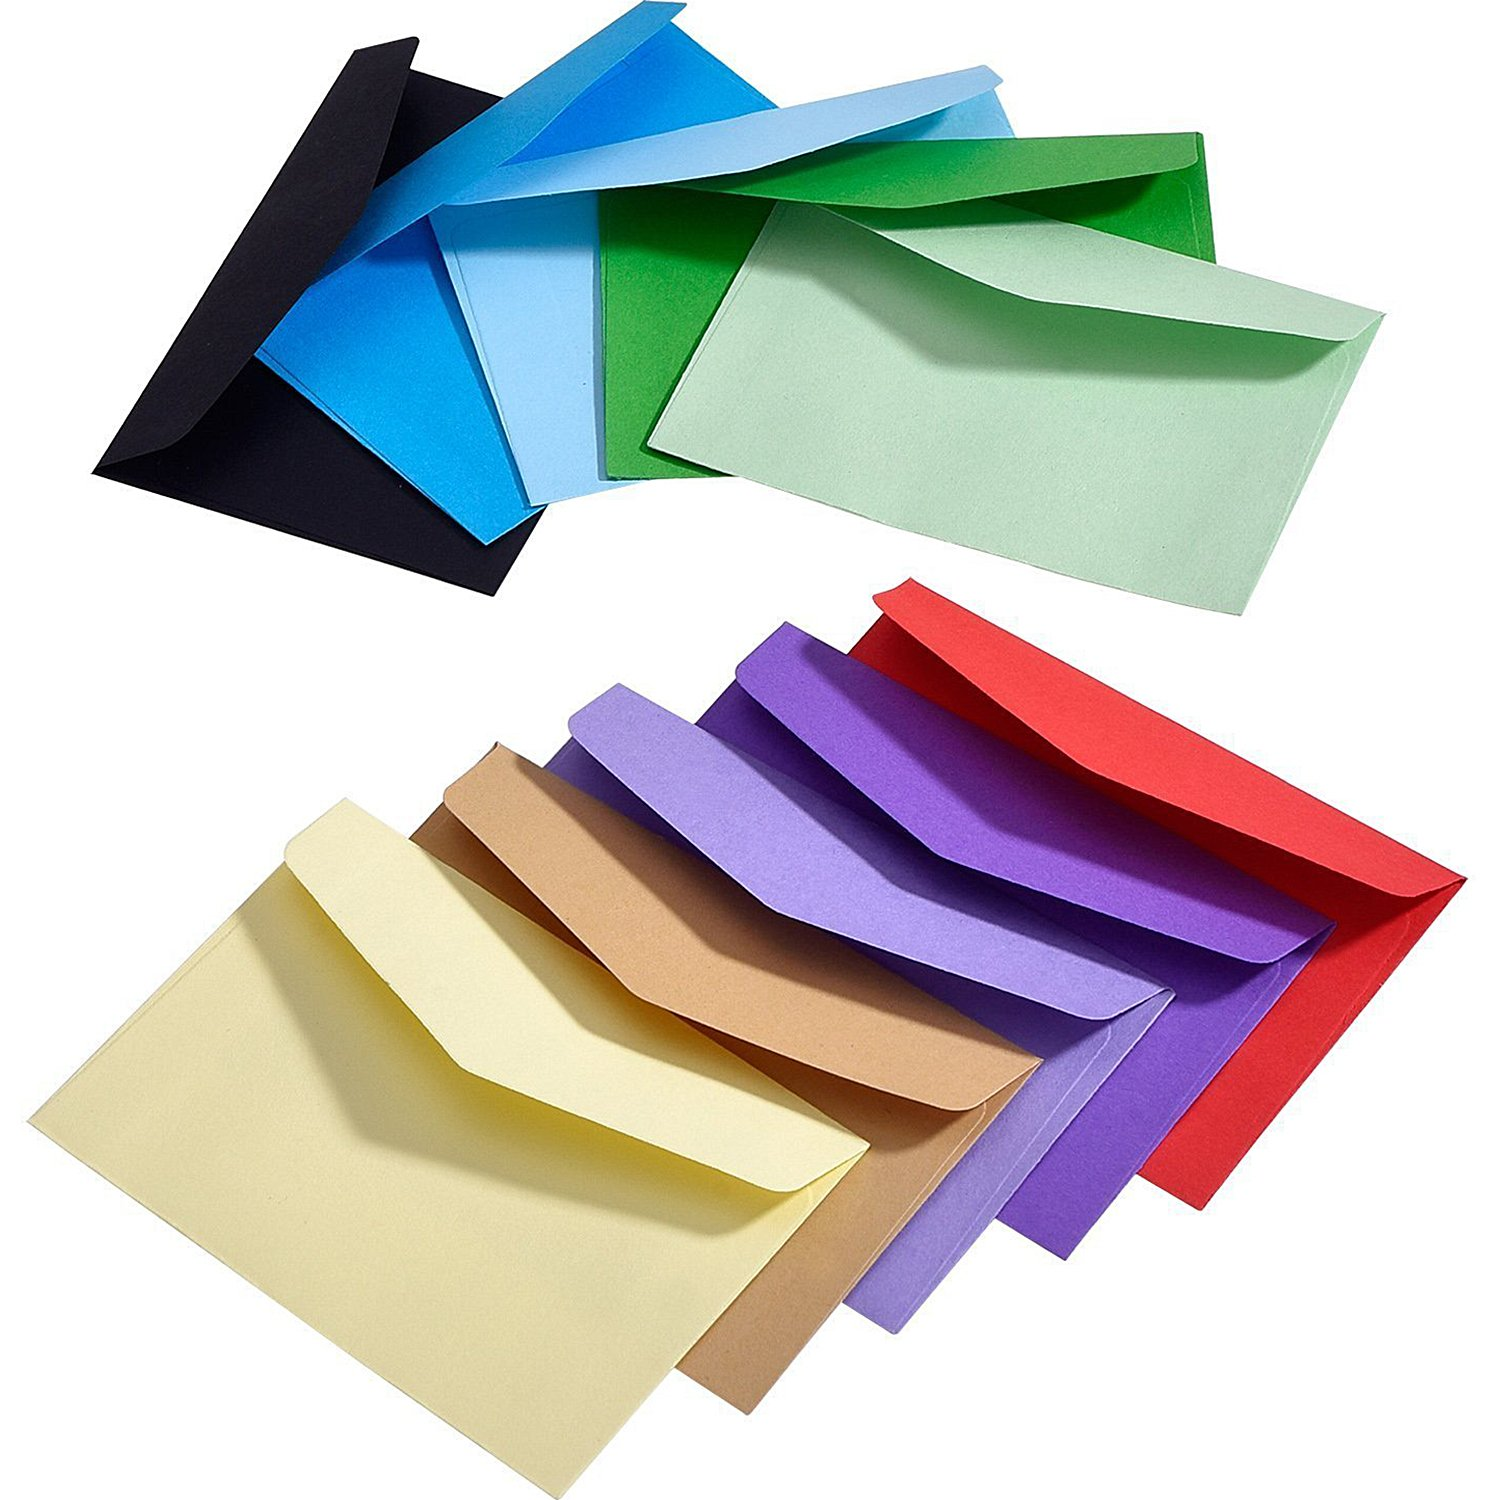 100 Pieces Mini Envelope Multi Color Cute Lovely (4.5 x 3.15 Inch) for Wedding, Birthday Party Gift Supplies eBoot